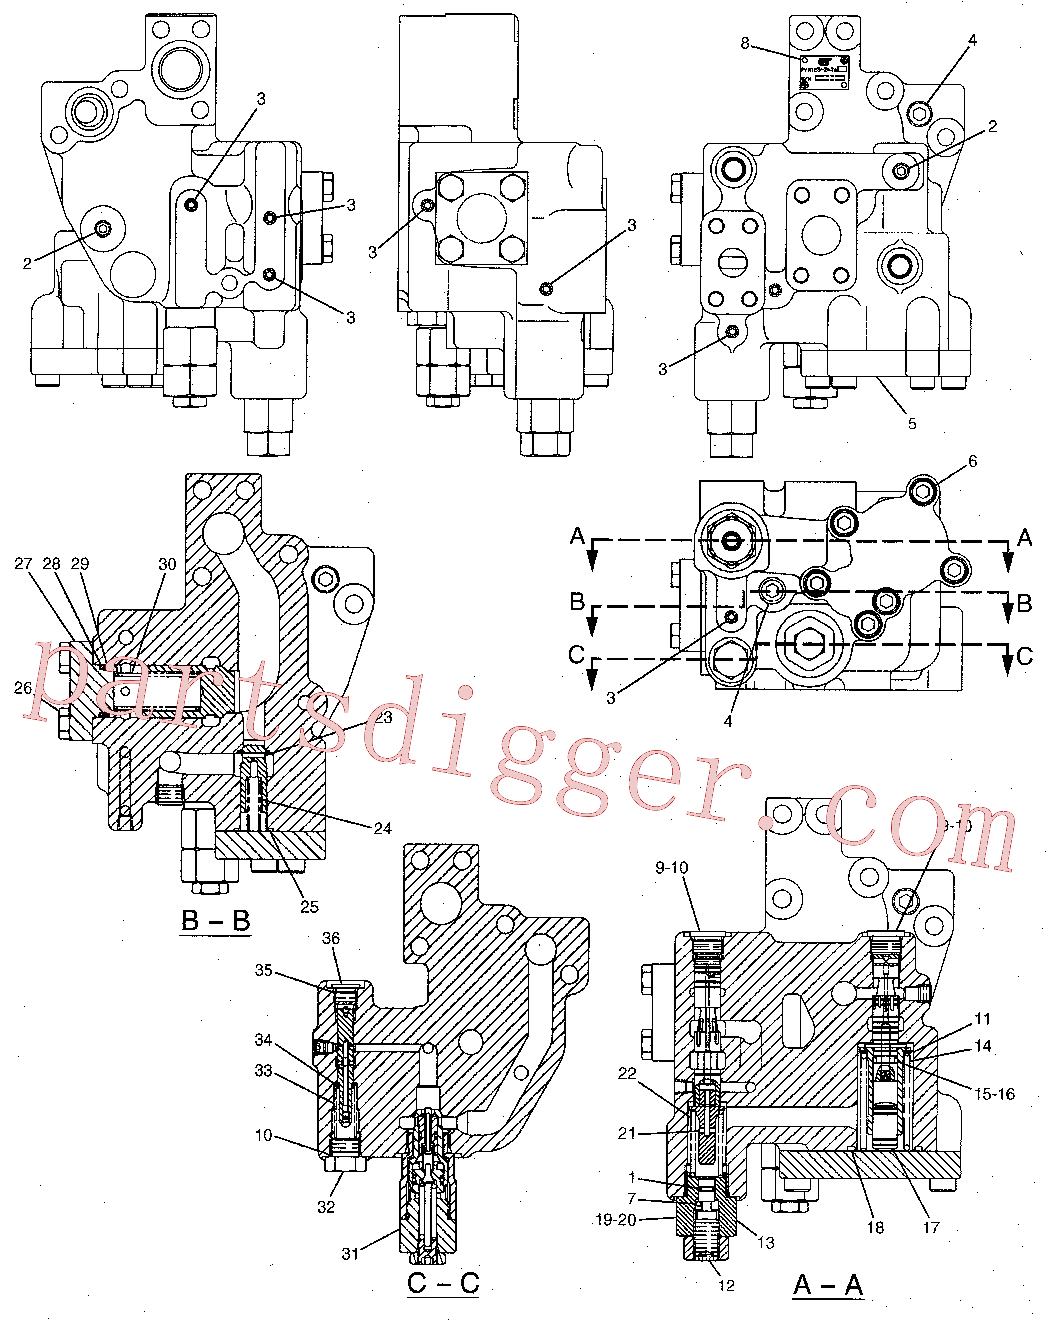 CAT 087-5166 for 330-A  L Excavator(EXC) hydraulic system 171-3266 Assembly